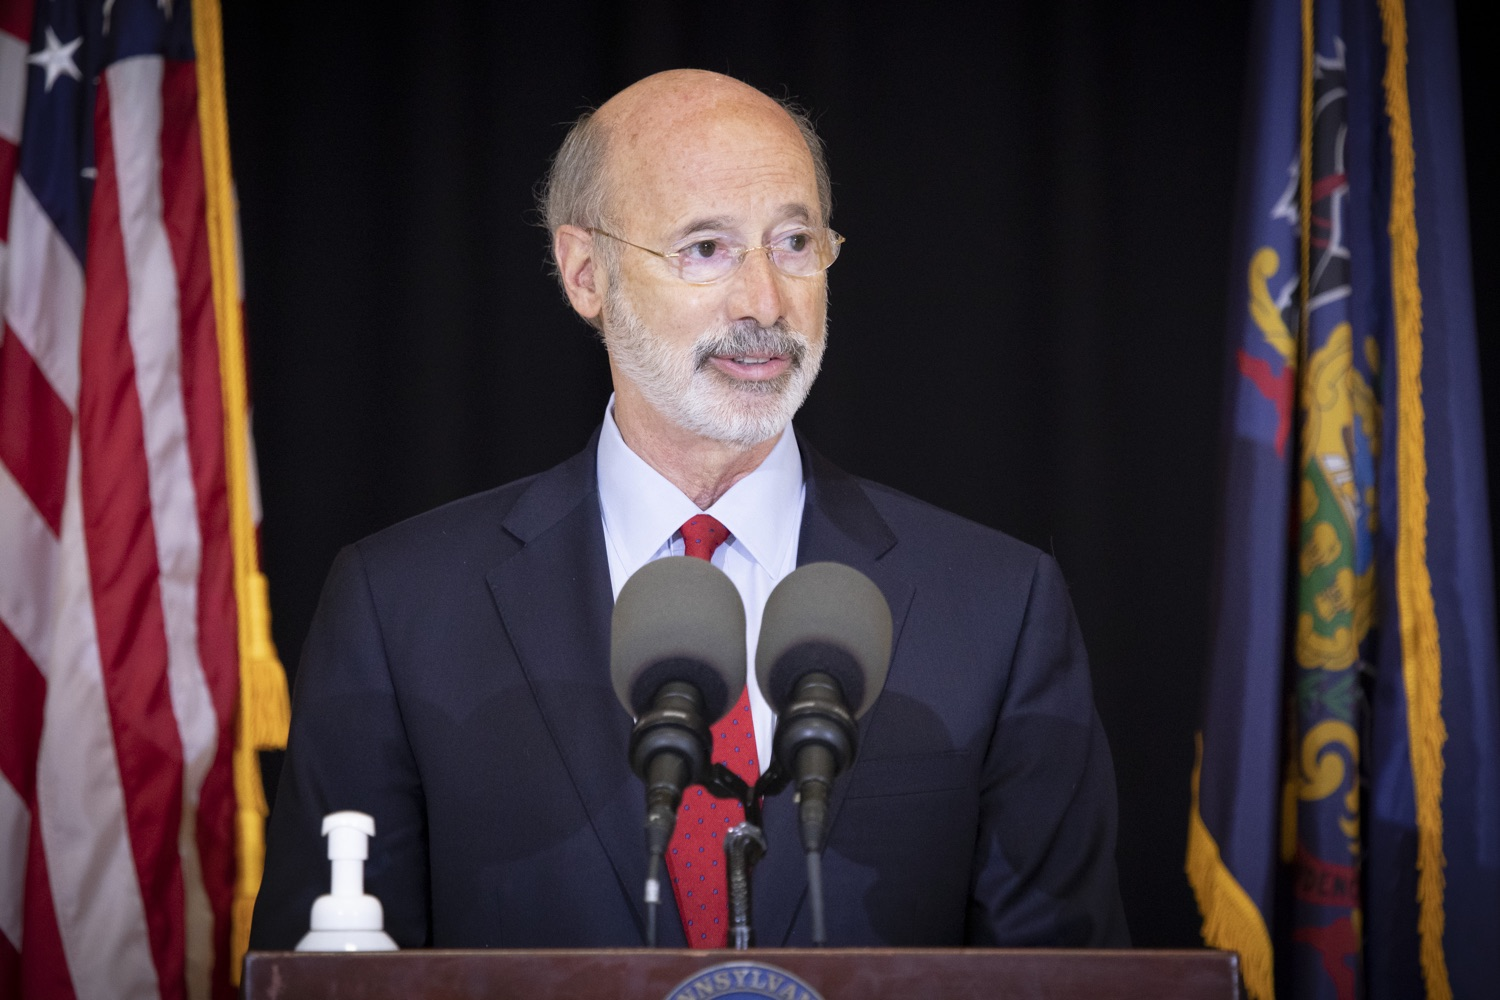 """<a href=""""https://filesource.wostreaming.net/commonwealthofpa/photo/18310_gov_adult_use_cannabis_dz_016.jpg"""" target=""""_blank"""">⇣Download Photo<br></a>Governor Tom Wolf speaks to the press.Governor Tom Wolf visited The Mountain Center in Tobyhanna, Monroe County today to talk about the economic growth potential and restorative justice benefits of legalizing adult-use cannabis, something the state General Assembly has not yet done despite multiple requests from the governor and Lieutenant Governor John Fetterman to take up legislation this fall.  Tobyhanna, PA  October 13, 2020"""